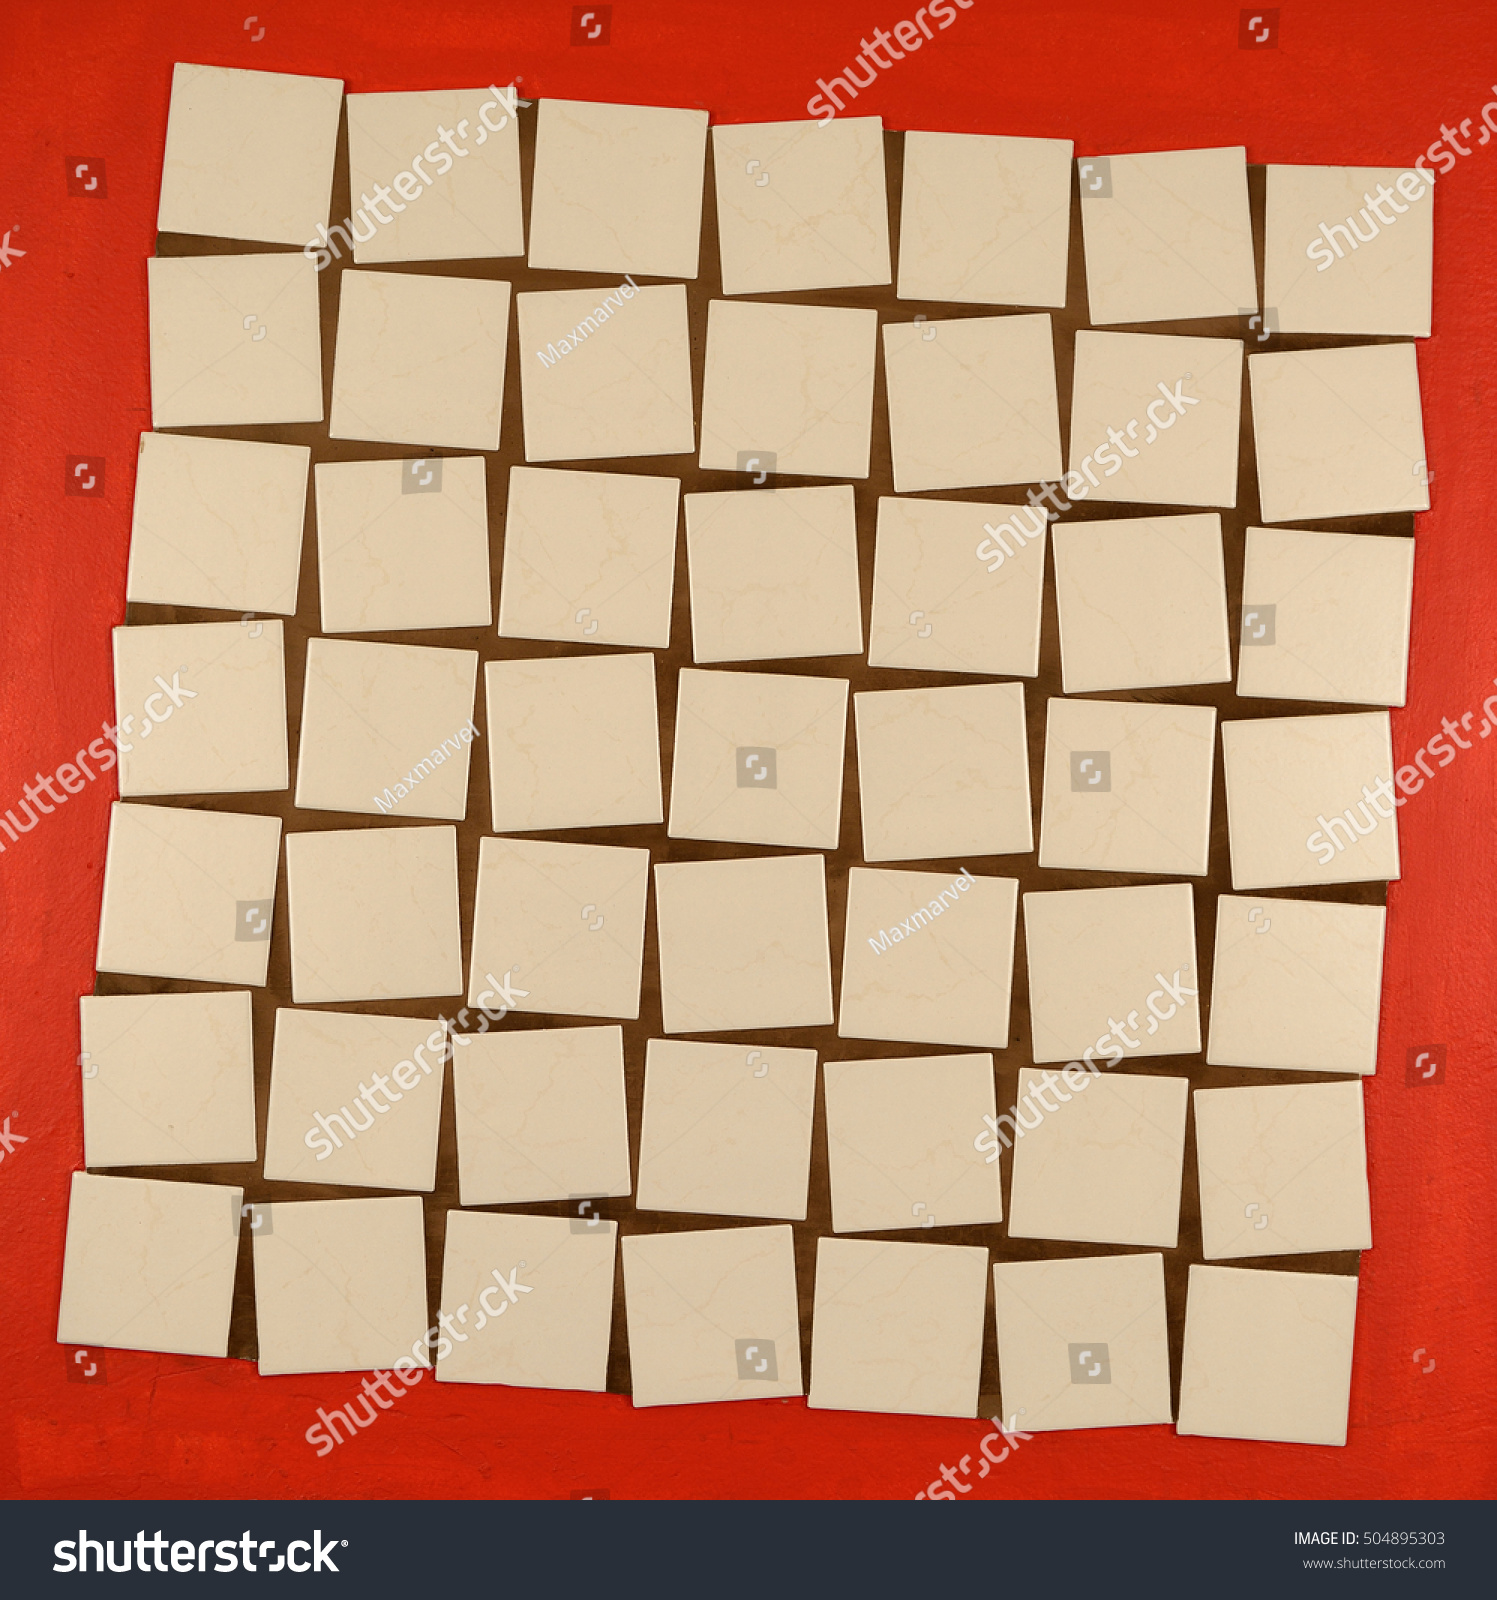 One ways lay out ceramic tiles stock photo 504895303 shutterstock one of the ways to lay out ceramic tiles using figured tile spacers dailygadgetfo Images